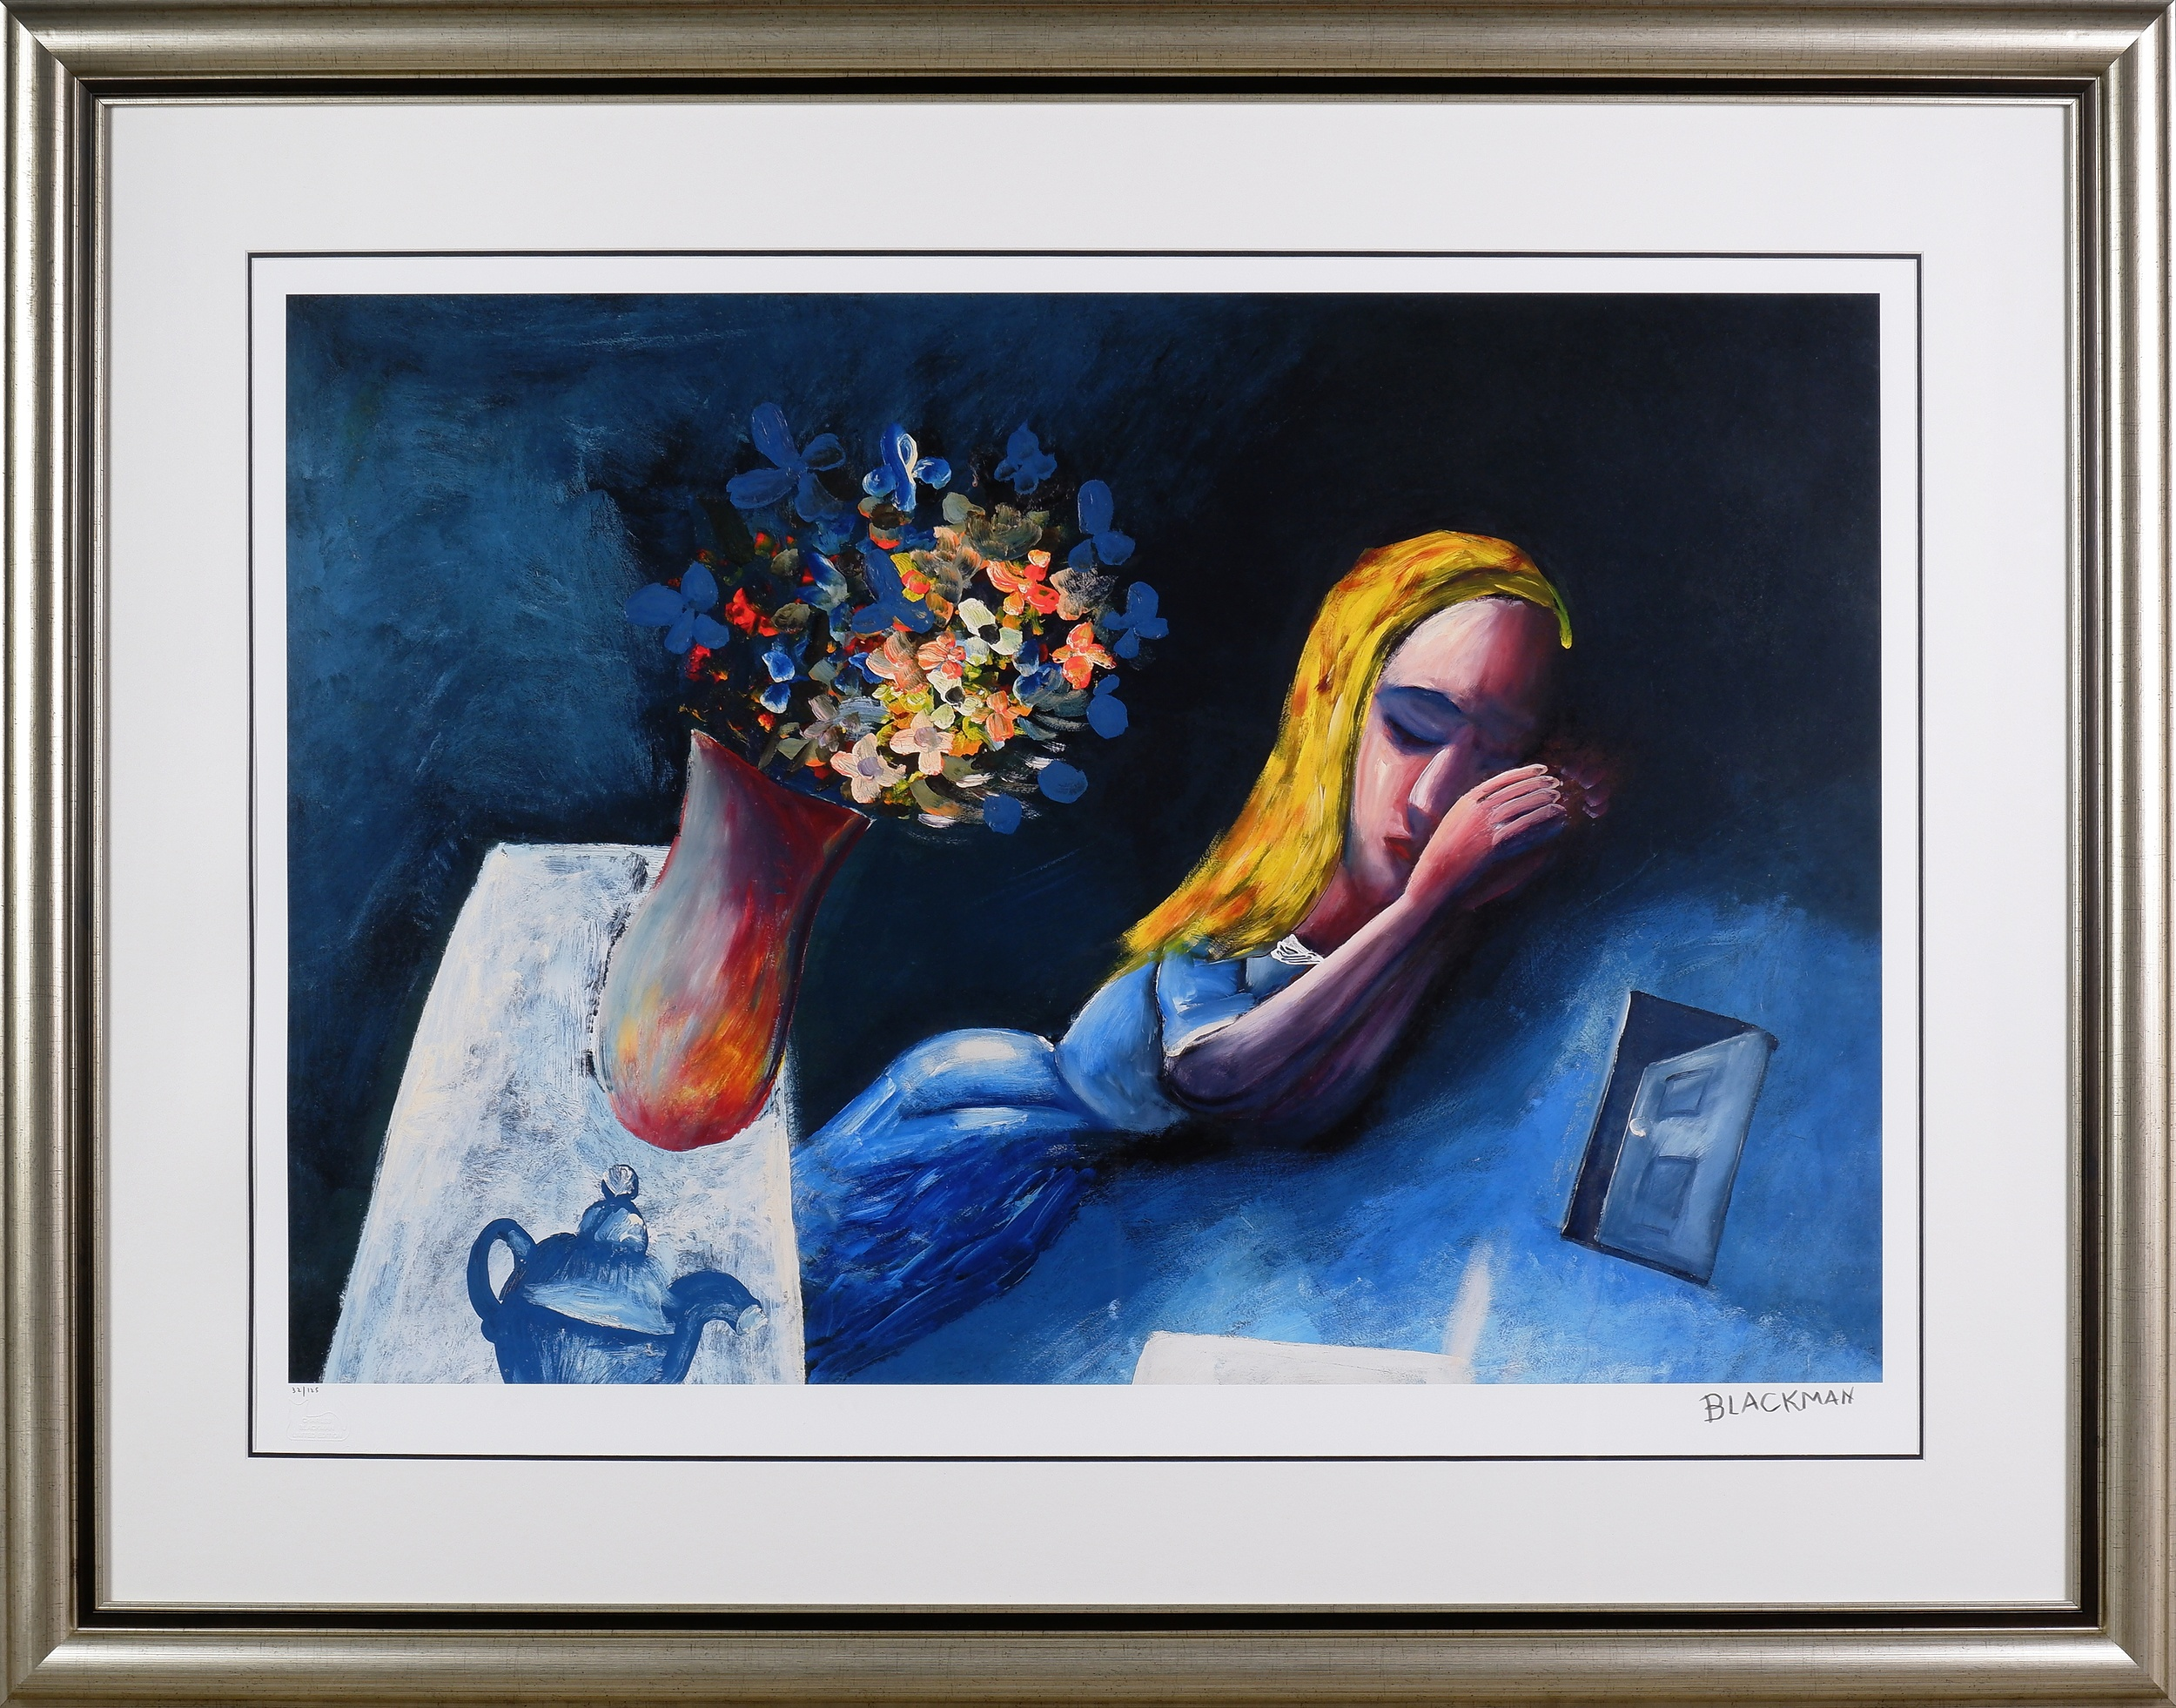 'Charles Blackman (1928-2018) , Dreaming Alice, Archival Pigment Print'